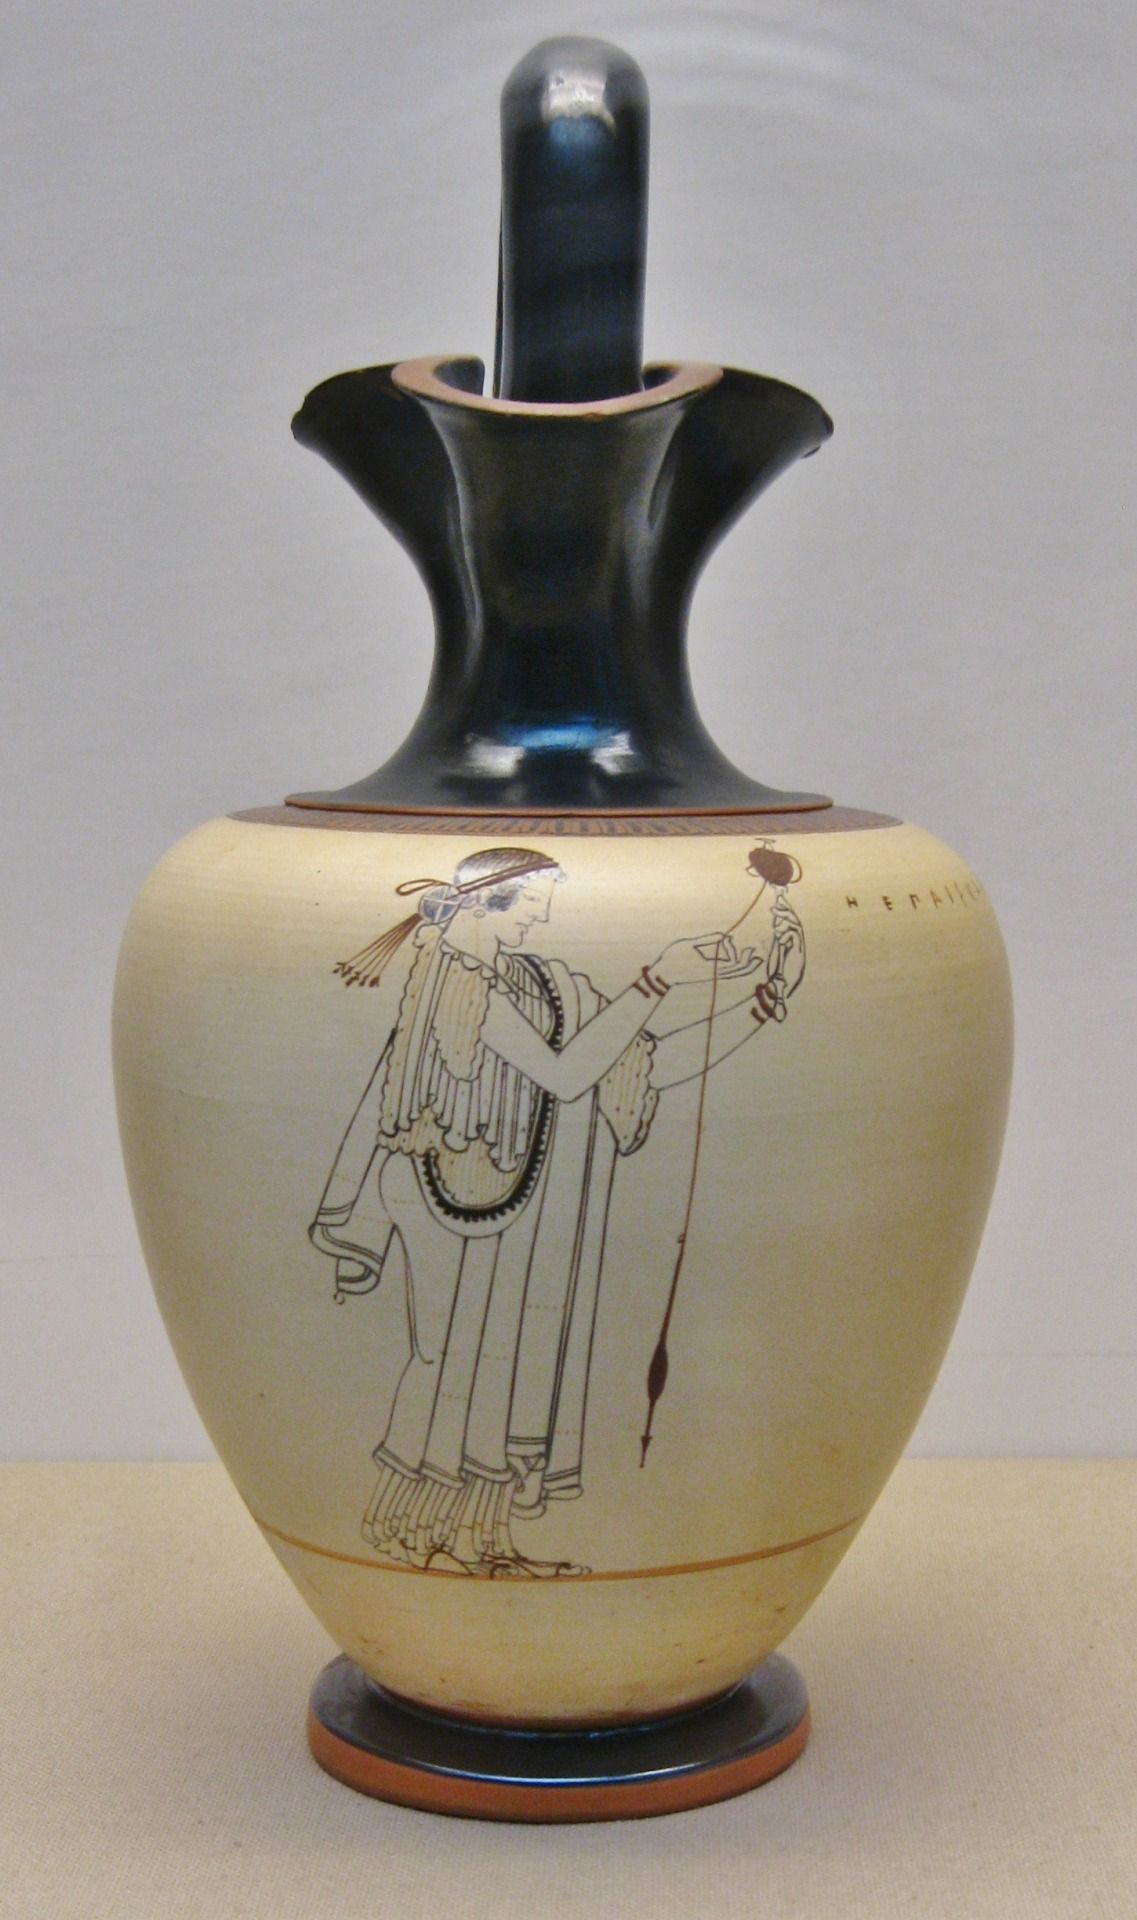 White Ground Jug Made In Athens In The Early 5th Century Bc The Woman Is Depicted Spinning Cloth This Is One Of Th Arte Griego Grecia Antigua Ceramica Griega